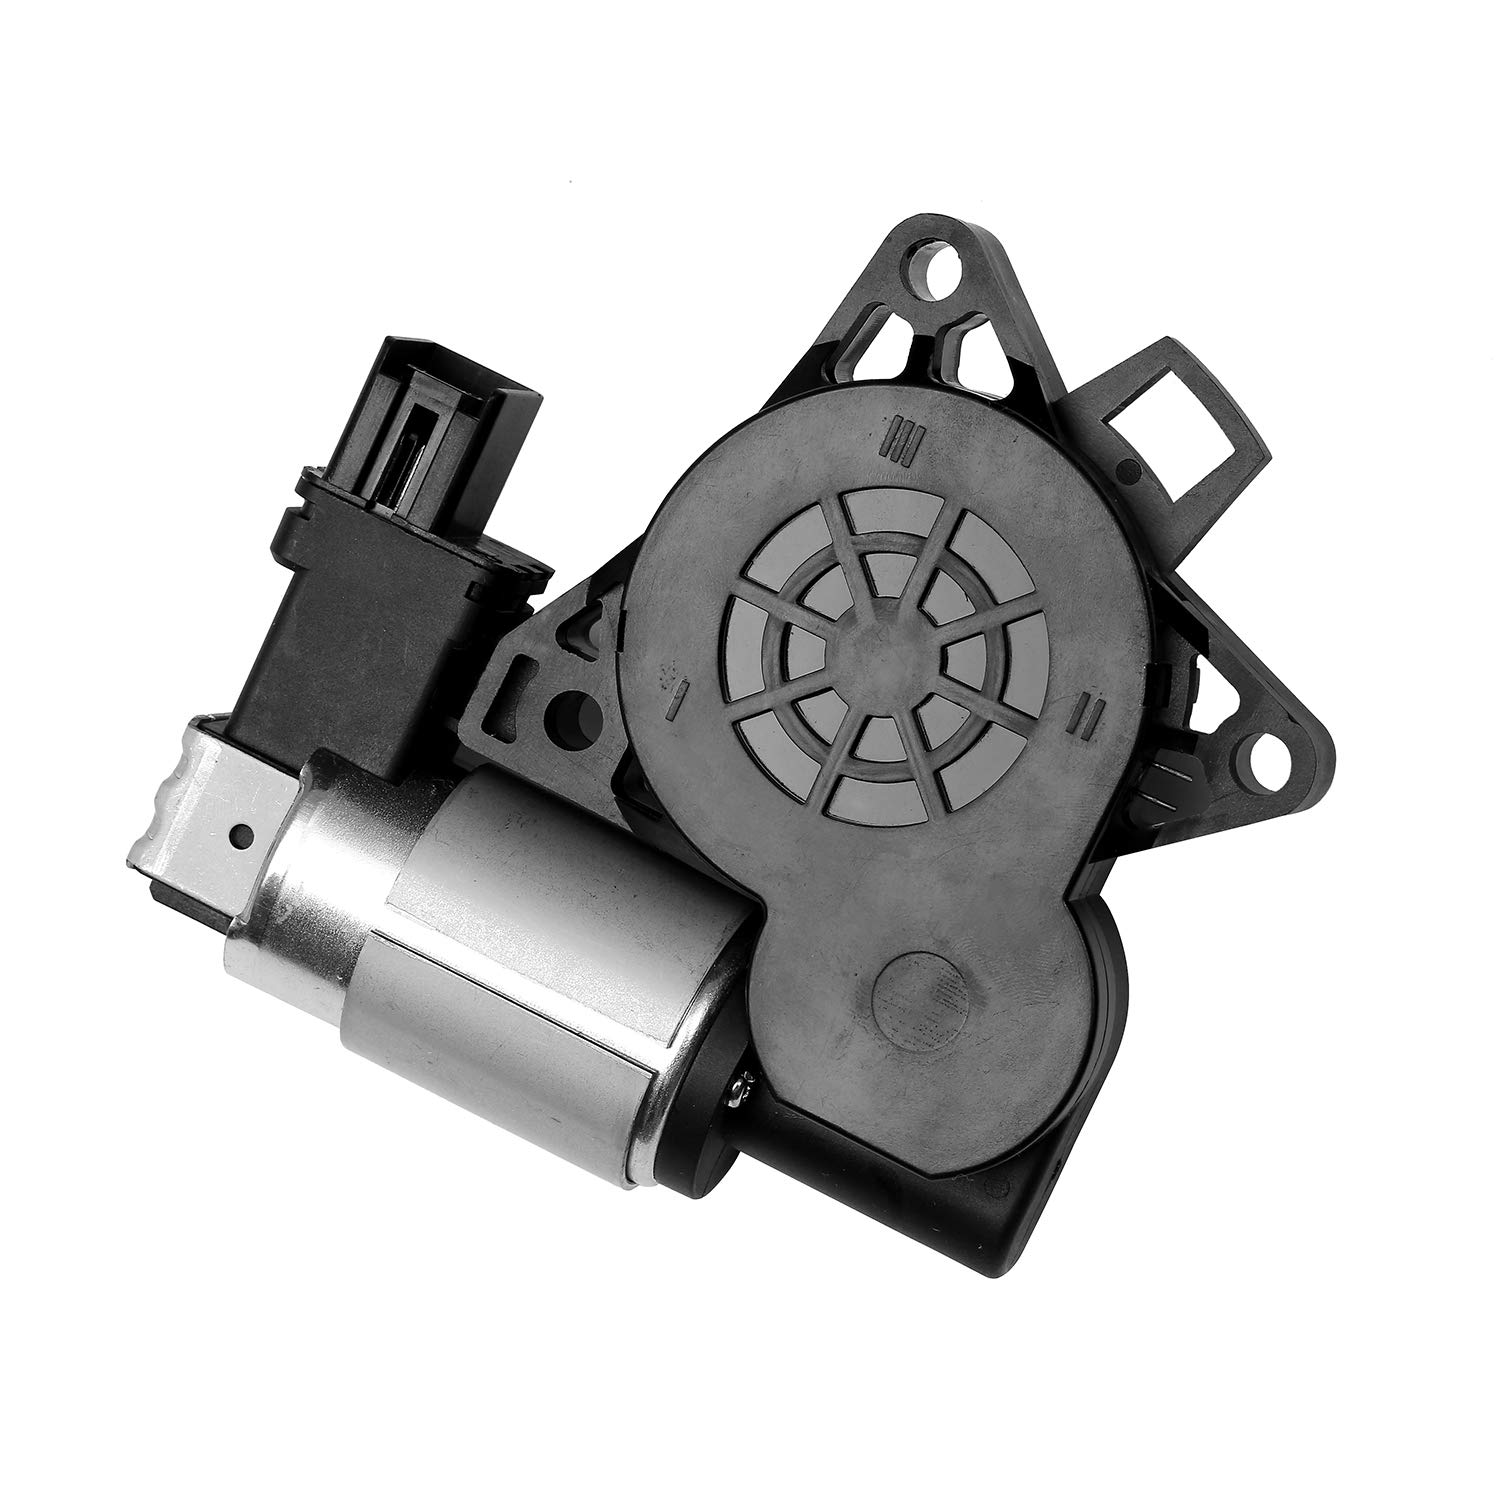 A-Premium Power Window Regulator Without Motor for Mazda CX-7 2007-2012 Rear Left